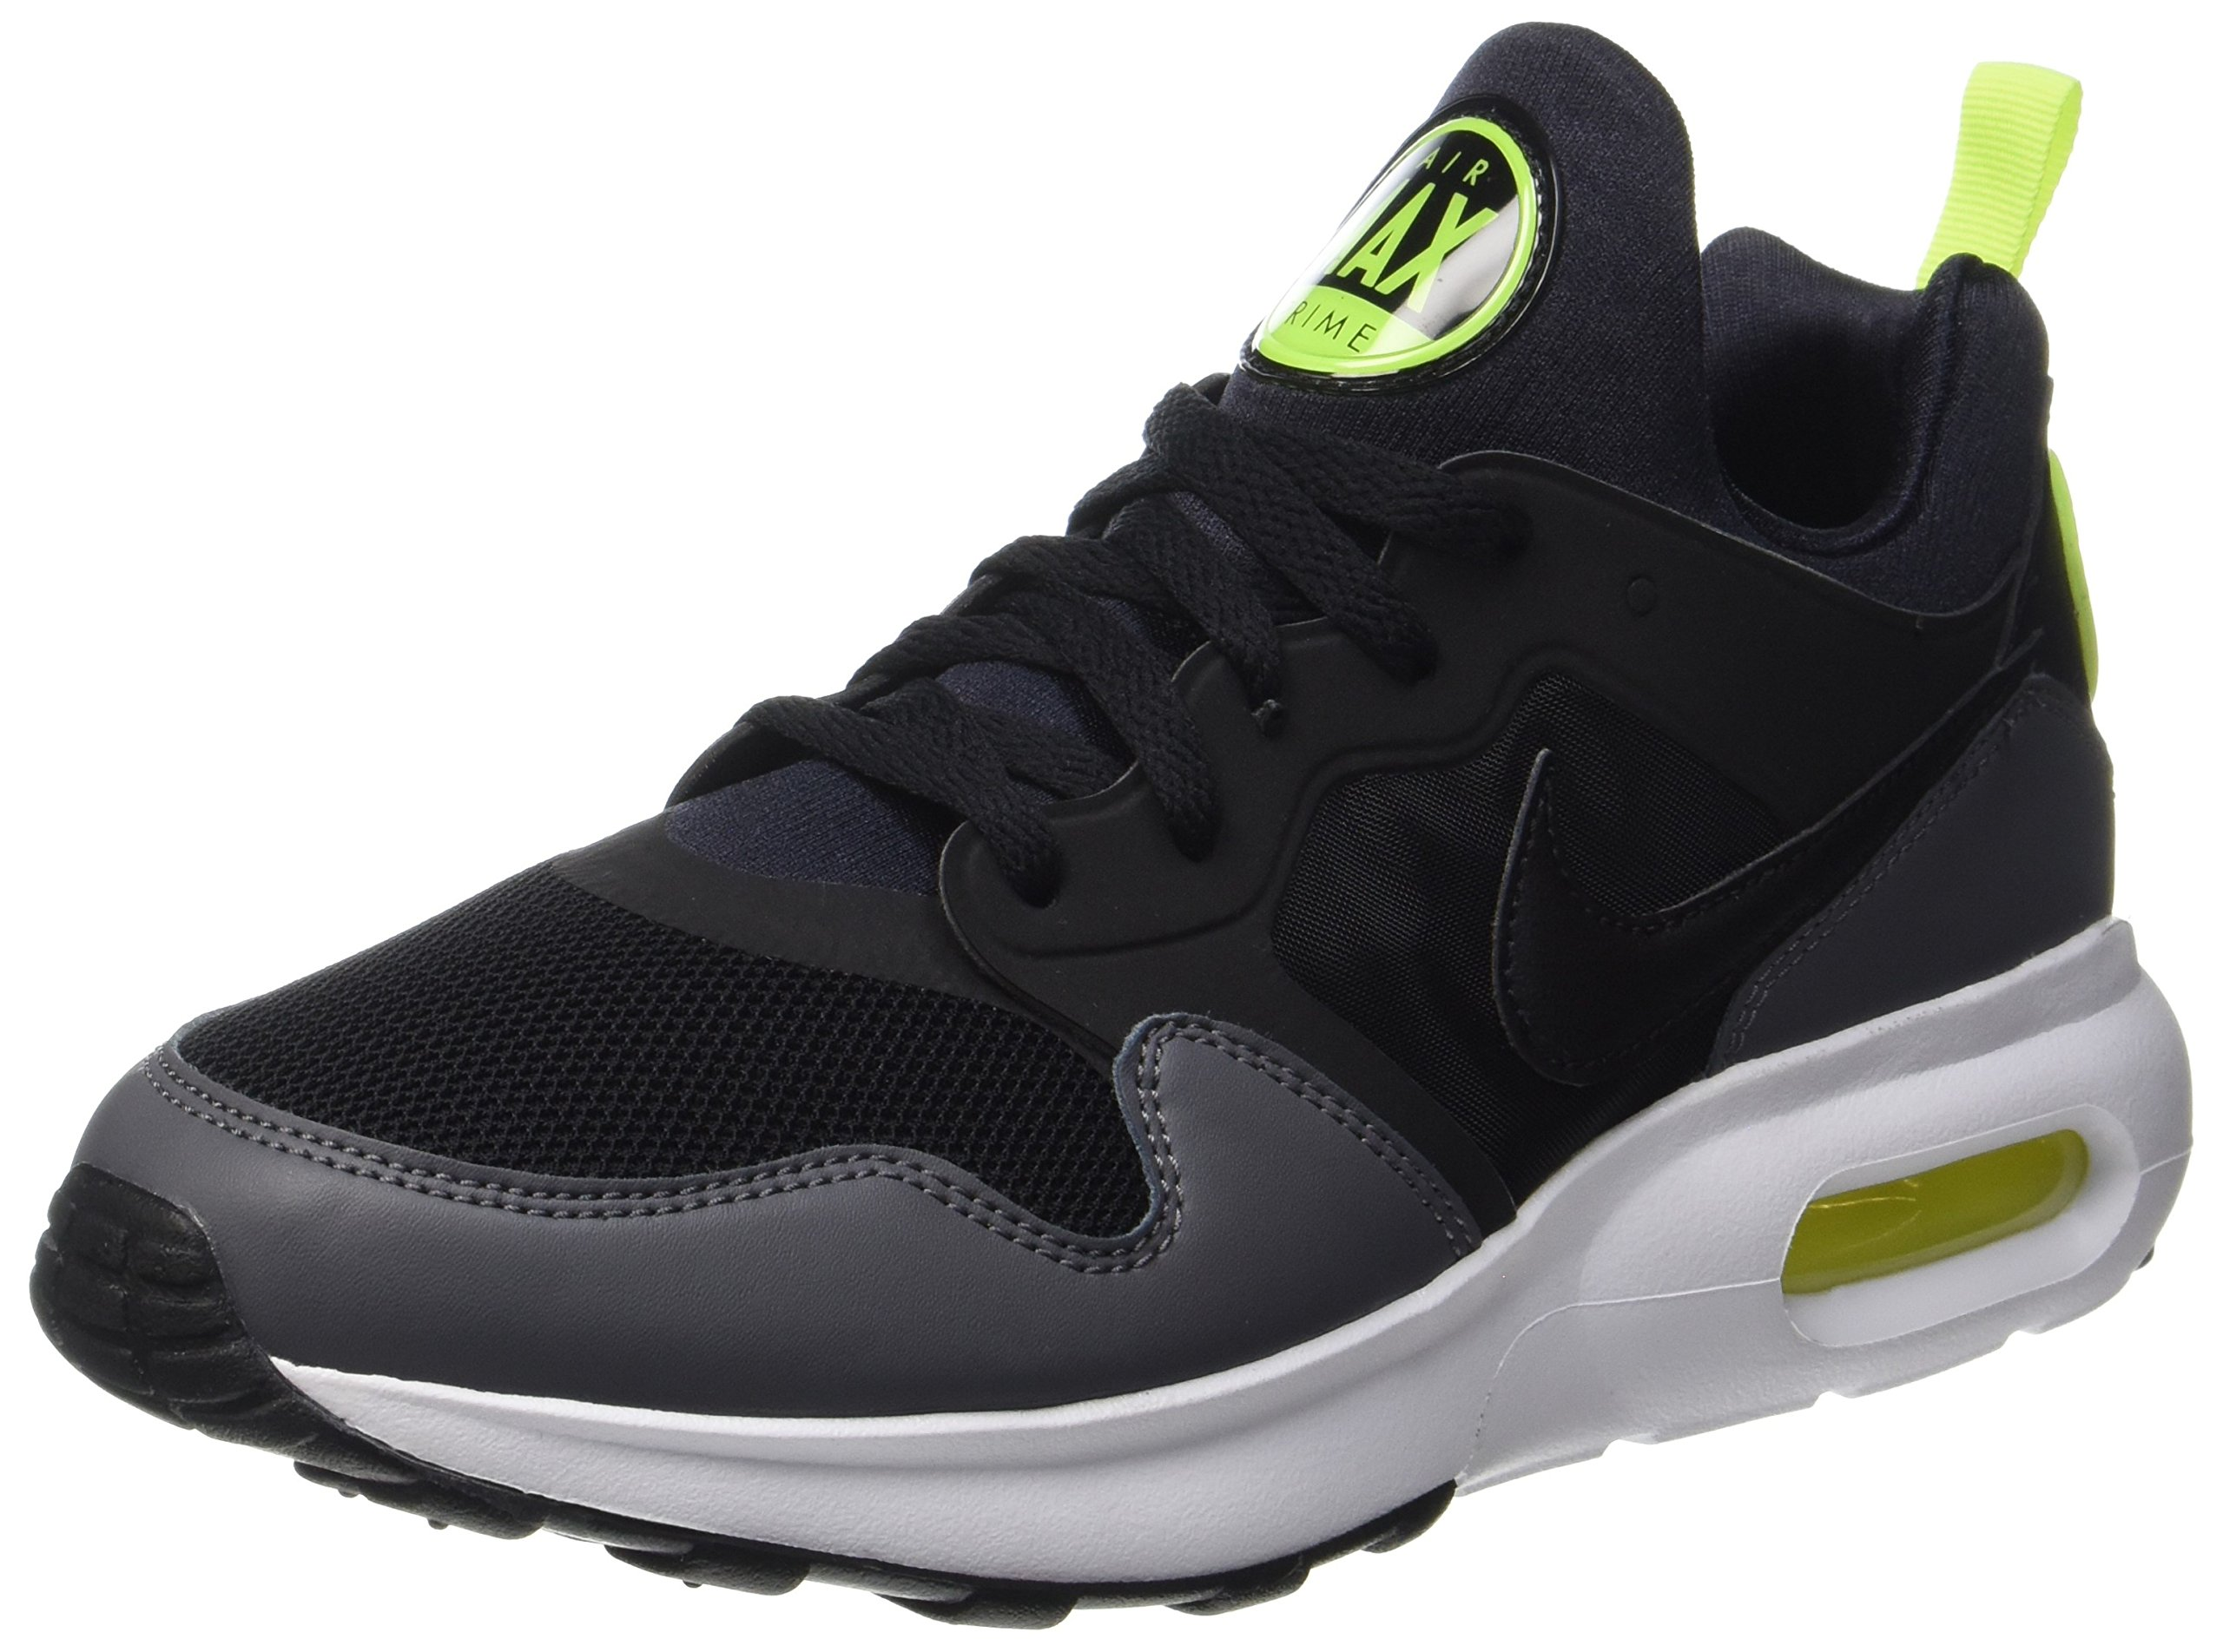 half off 27a1a aada7 Galleon - Nike Air Max Prime Mens Running Trainers 876068 Sneakers Shoes  (UK 10 US 11 EU 45, Black Dark Grey Volt 005)